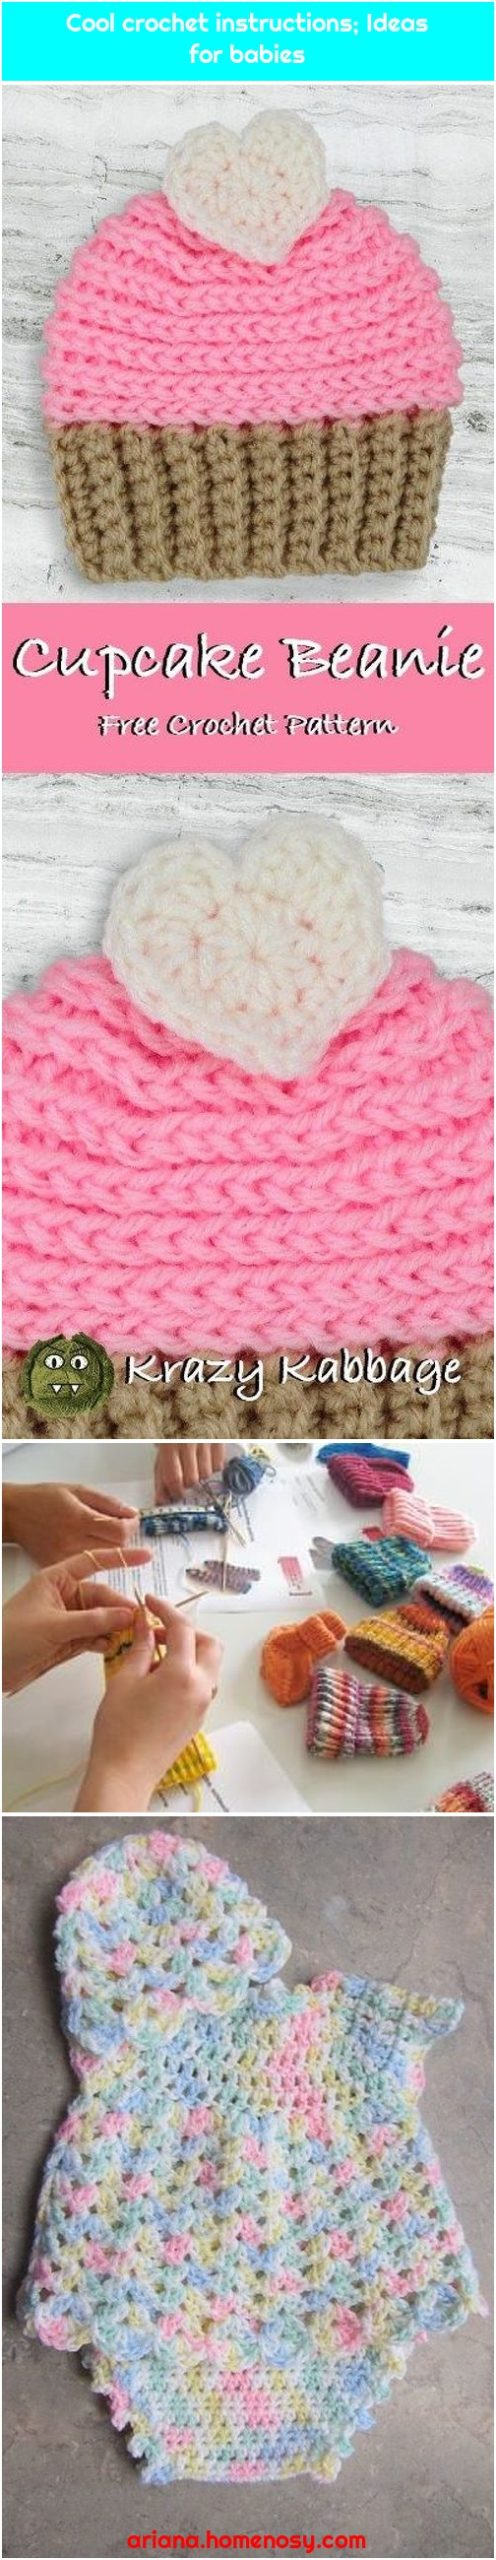 Cool crochet instructions; Ideas for babies